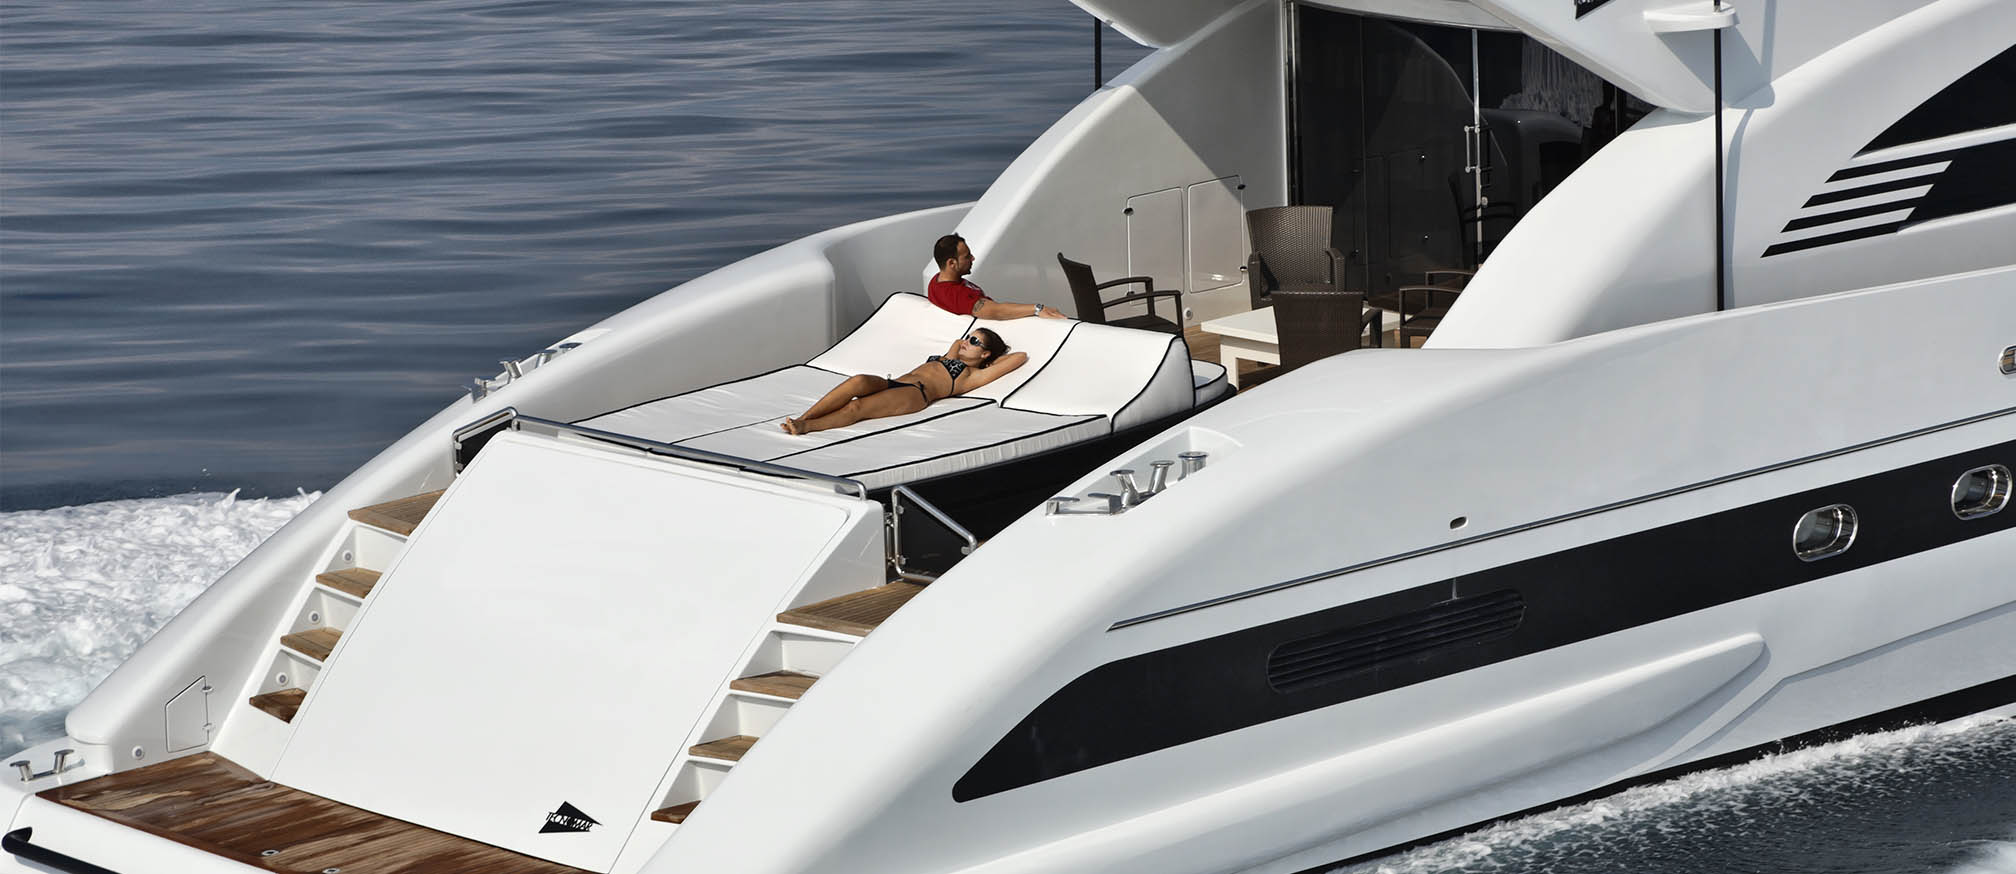 Wife and husband relaxing on a charter megayacht